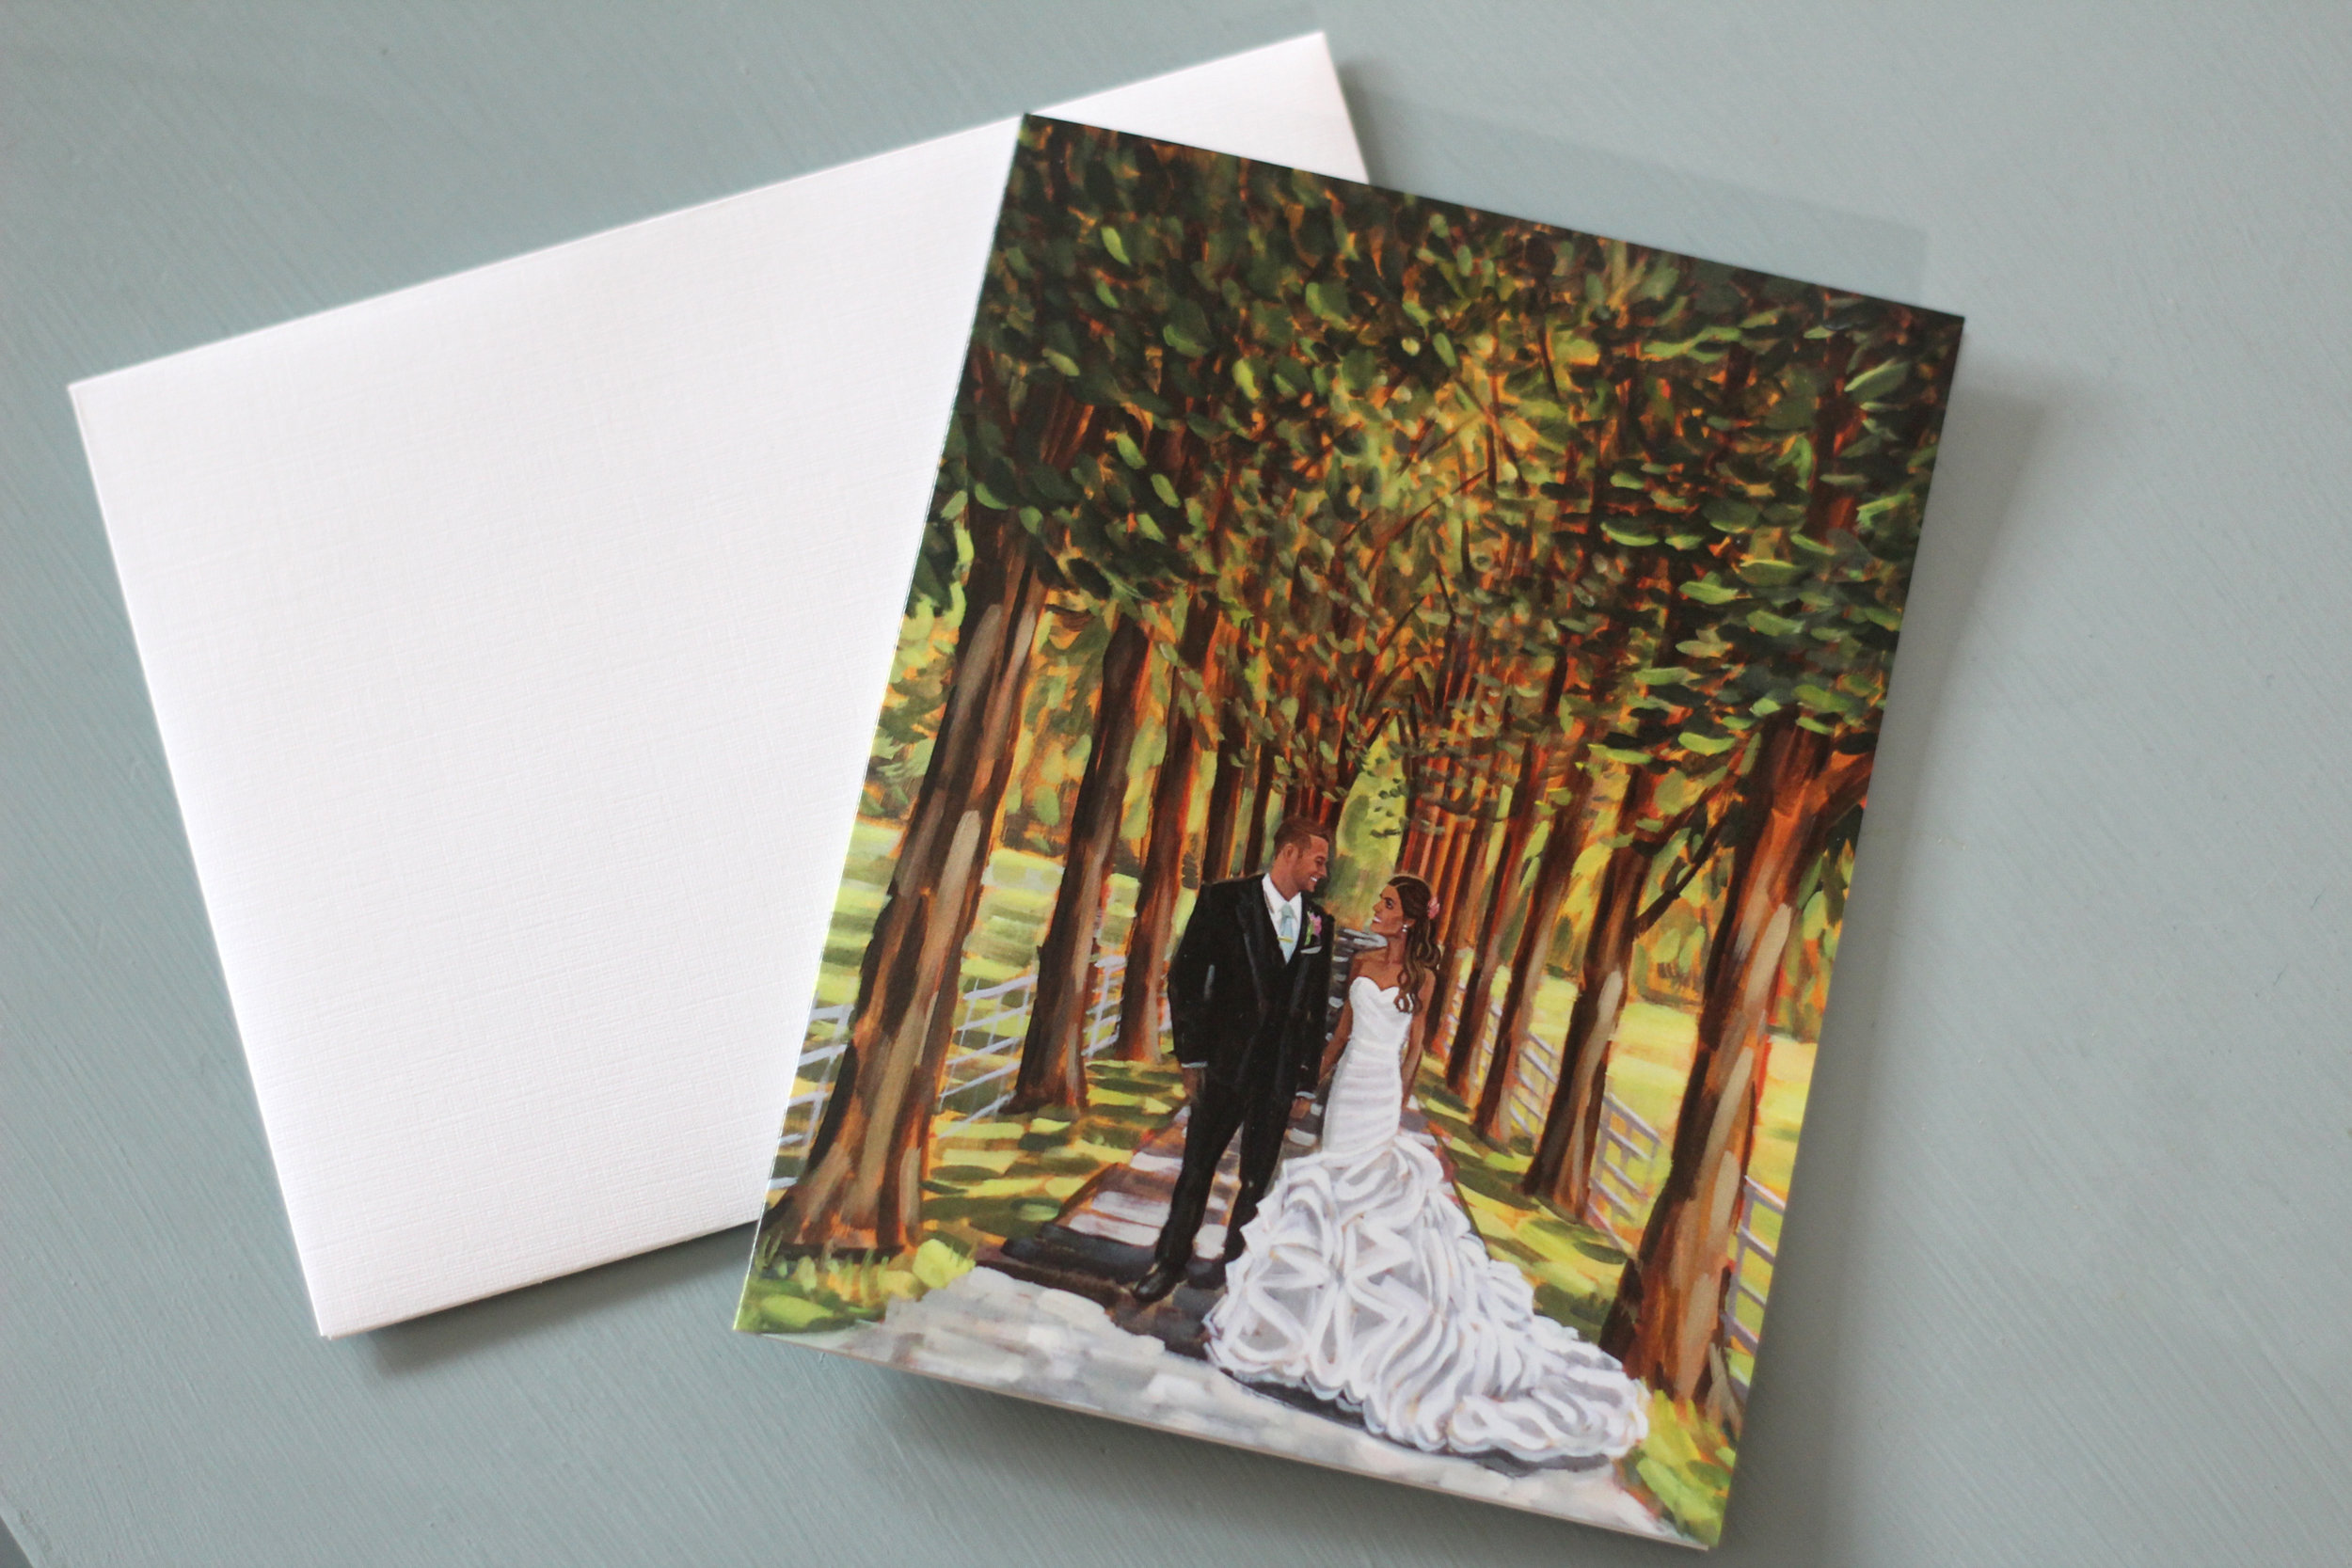 Chloe + Stu's live wedding painting looks gorgeous on their set of custom stationery!